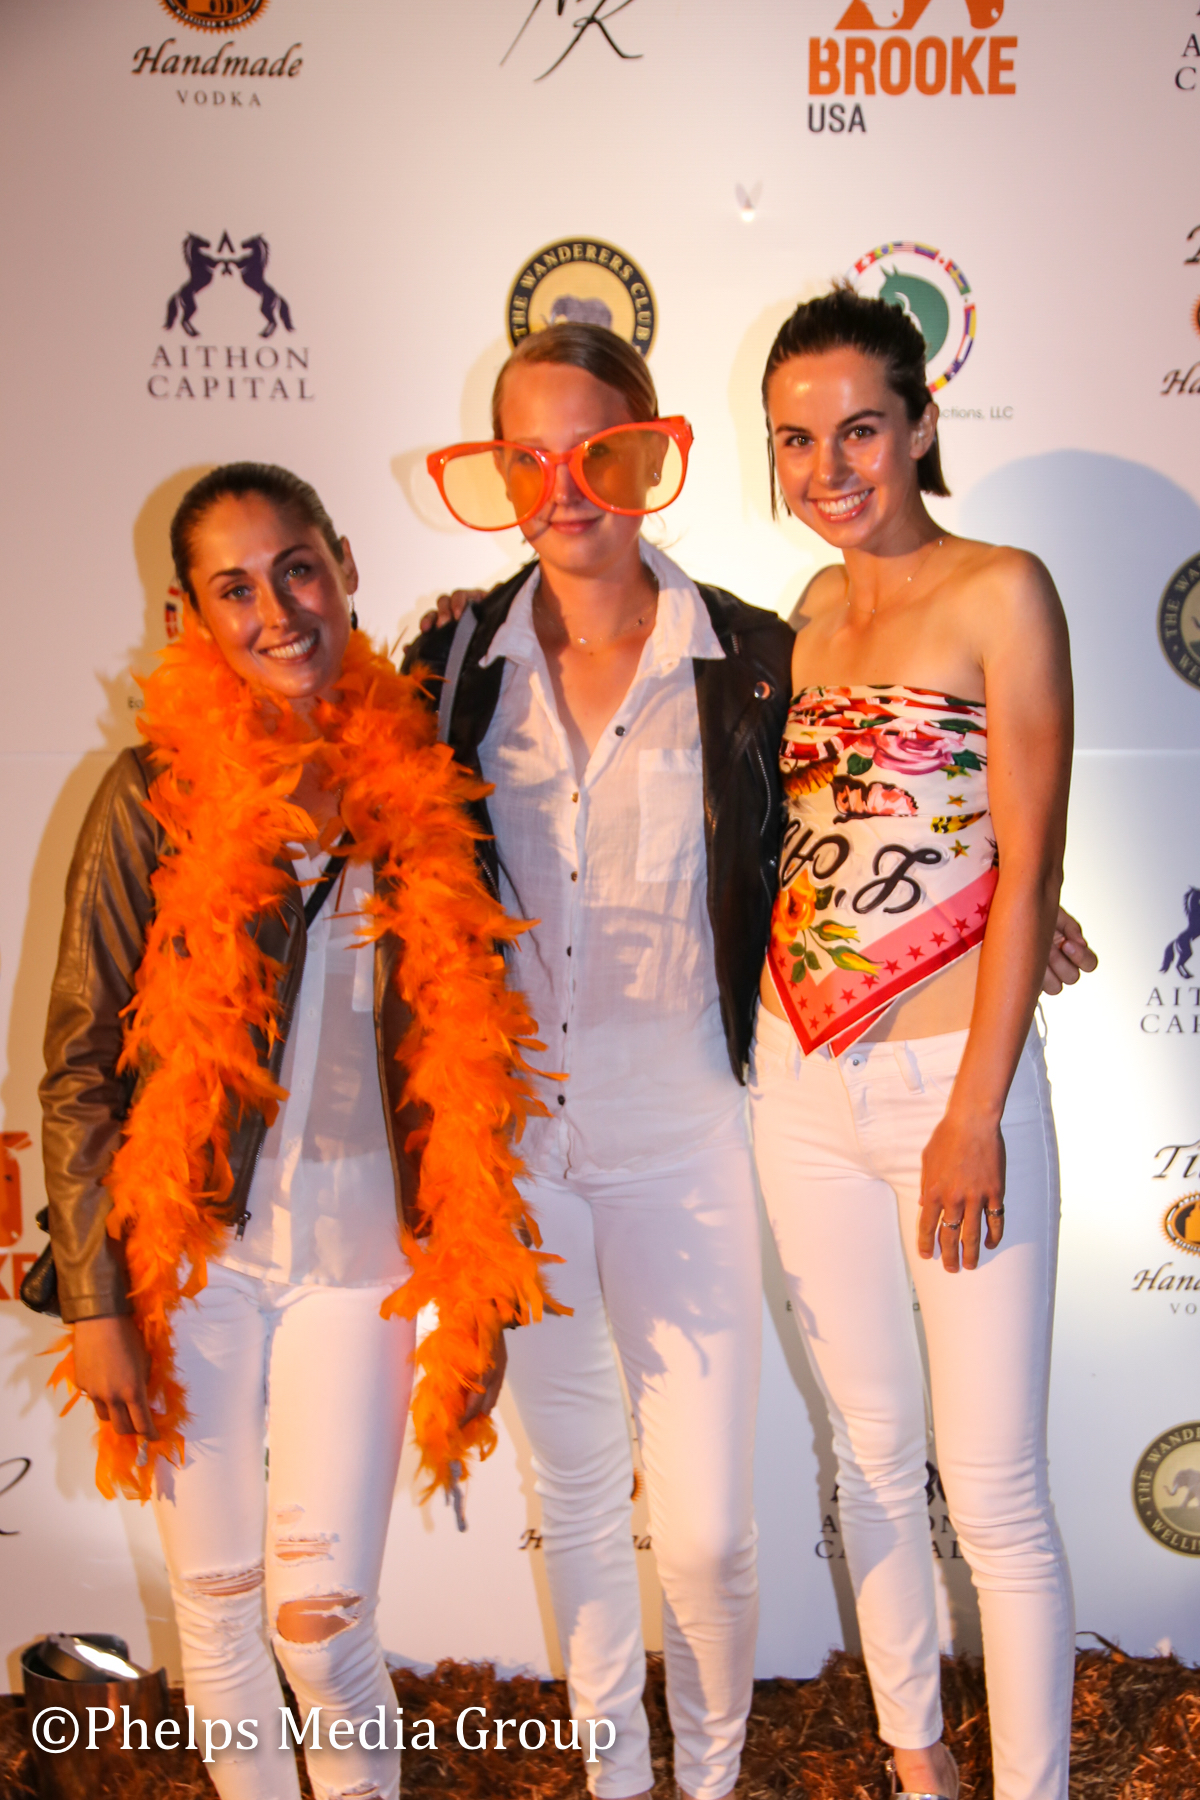 Letimonier Sisters; Nic Roldan's 2nd Annual Sunset Polo & White Party, FL, by Phelps Media.jpg